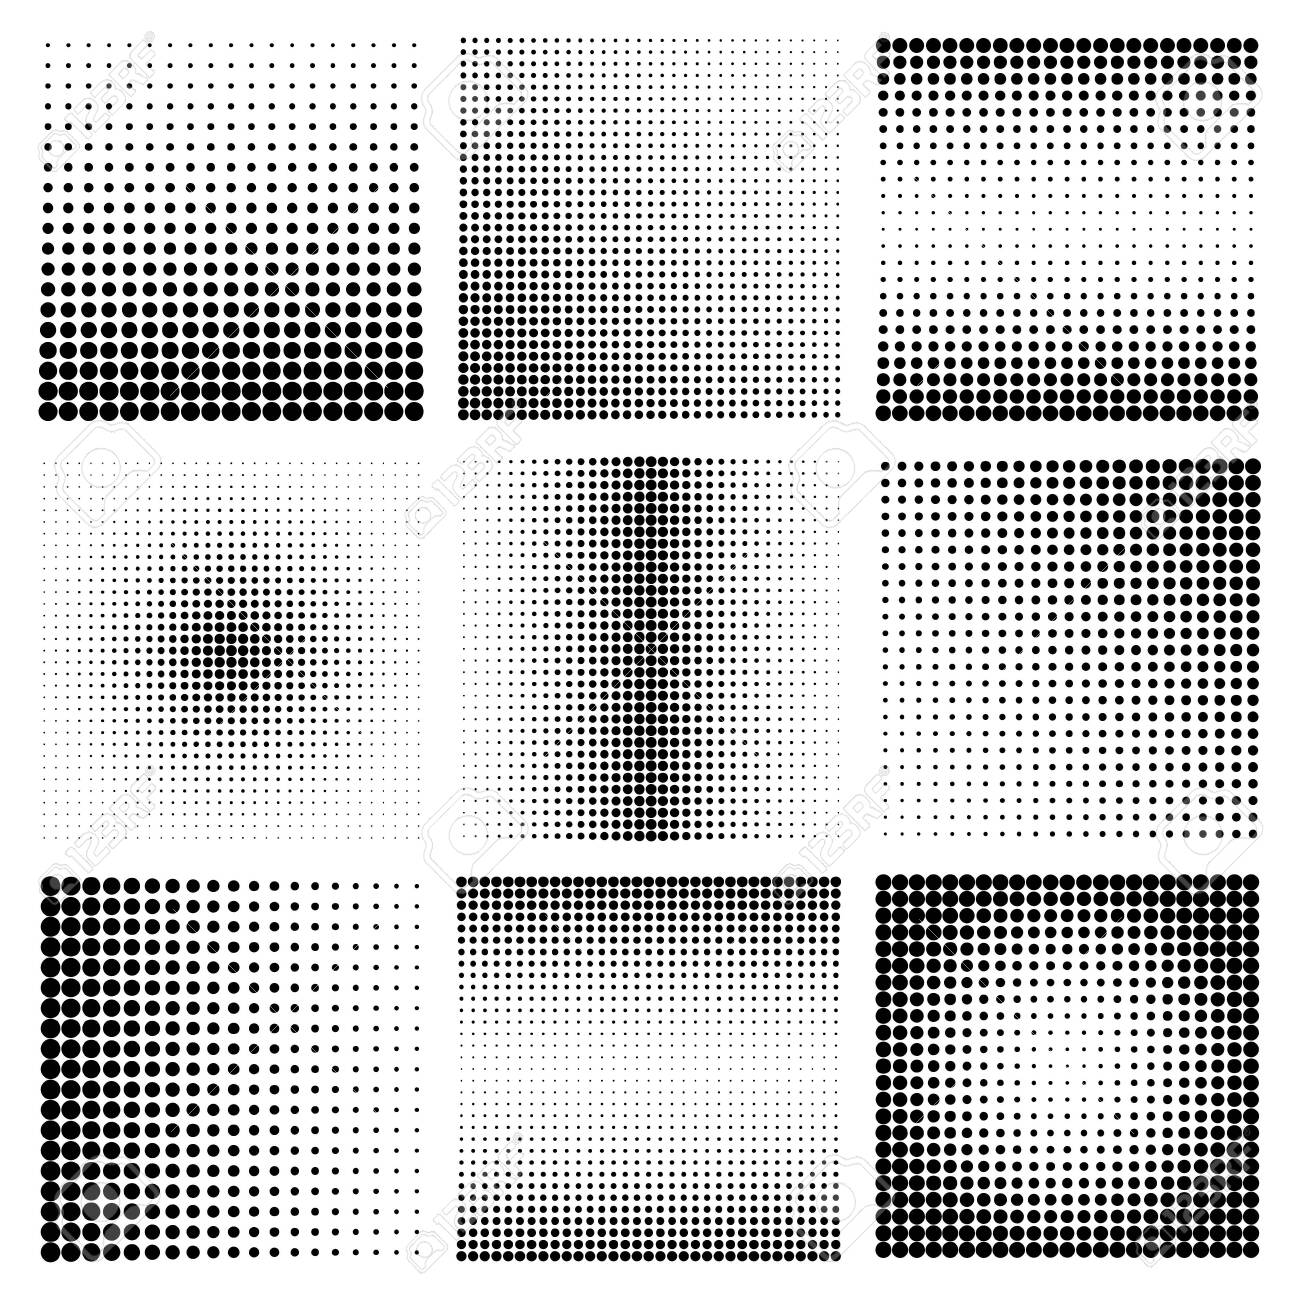 Halftone design elements with black dots isolated on white background. Comic dotted pattern.Vector illustration. - 154069236